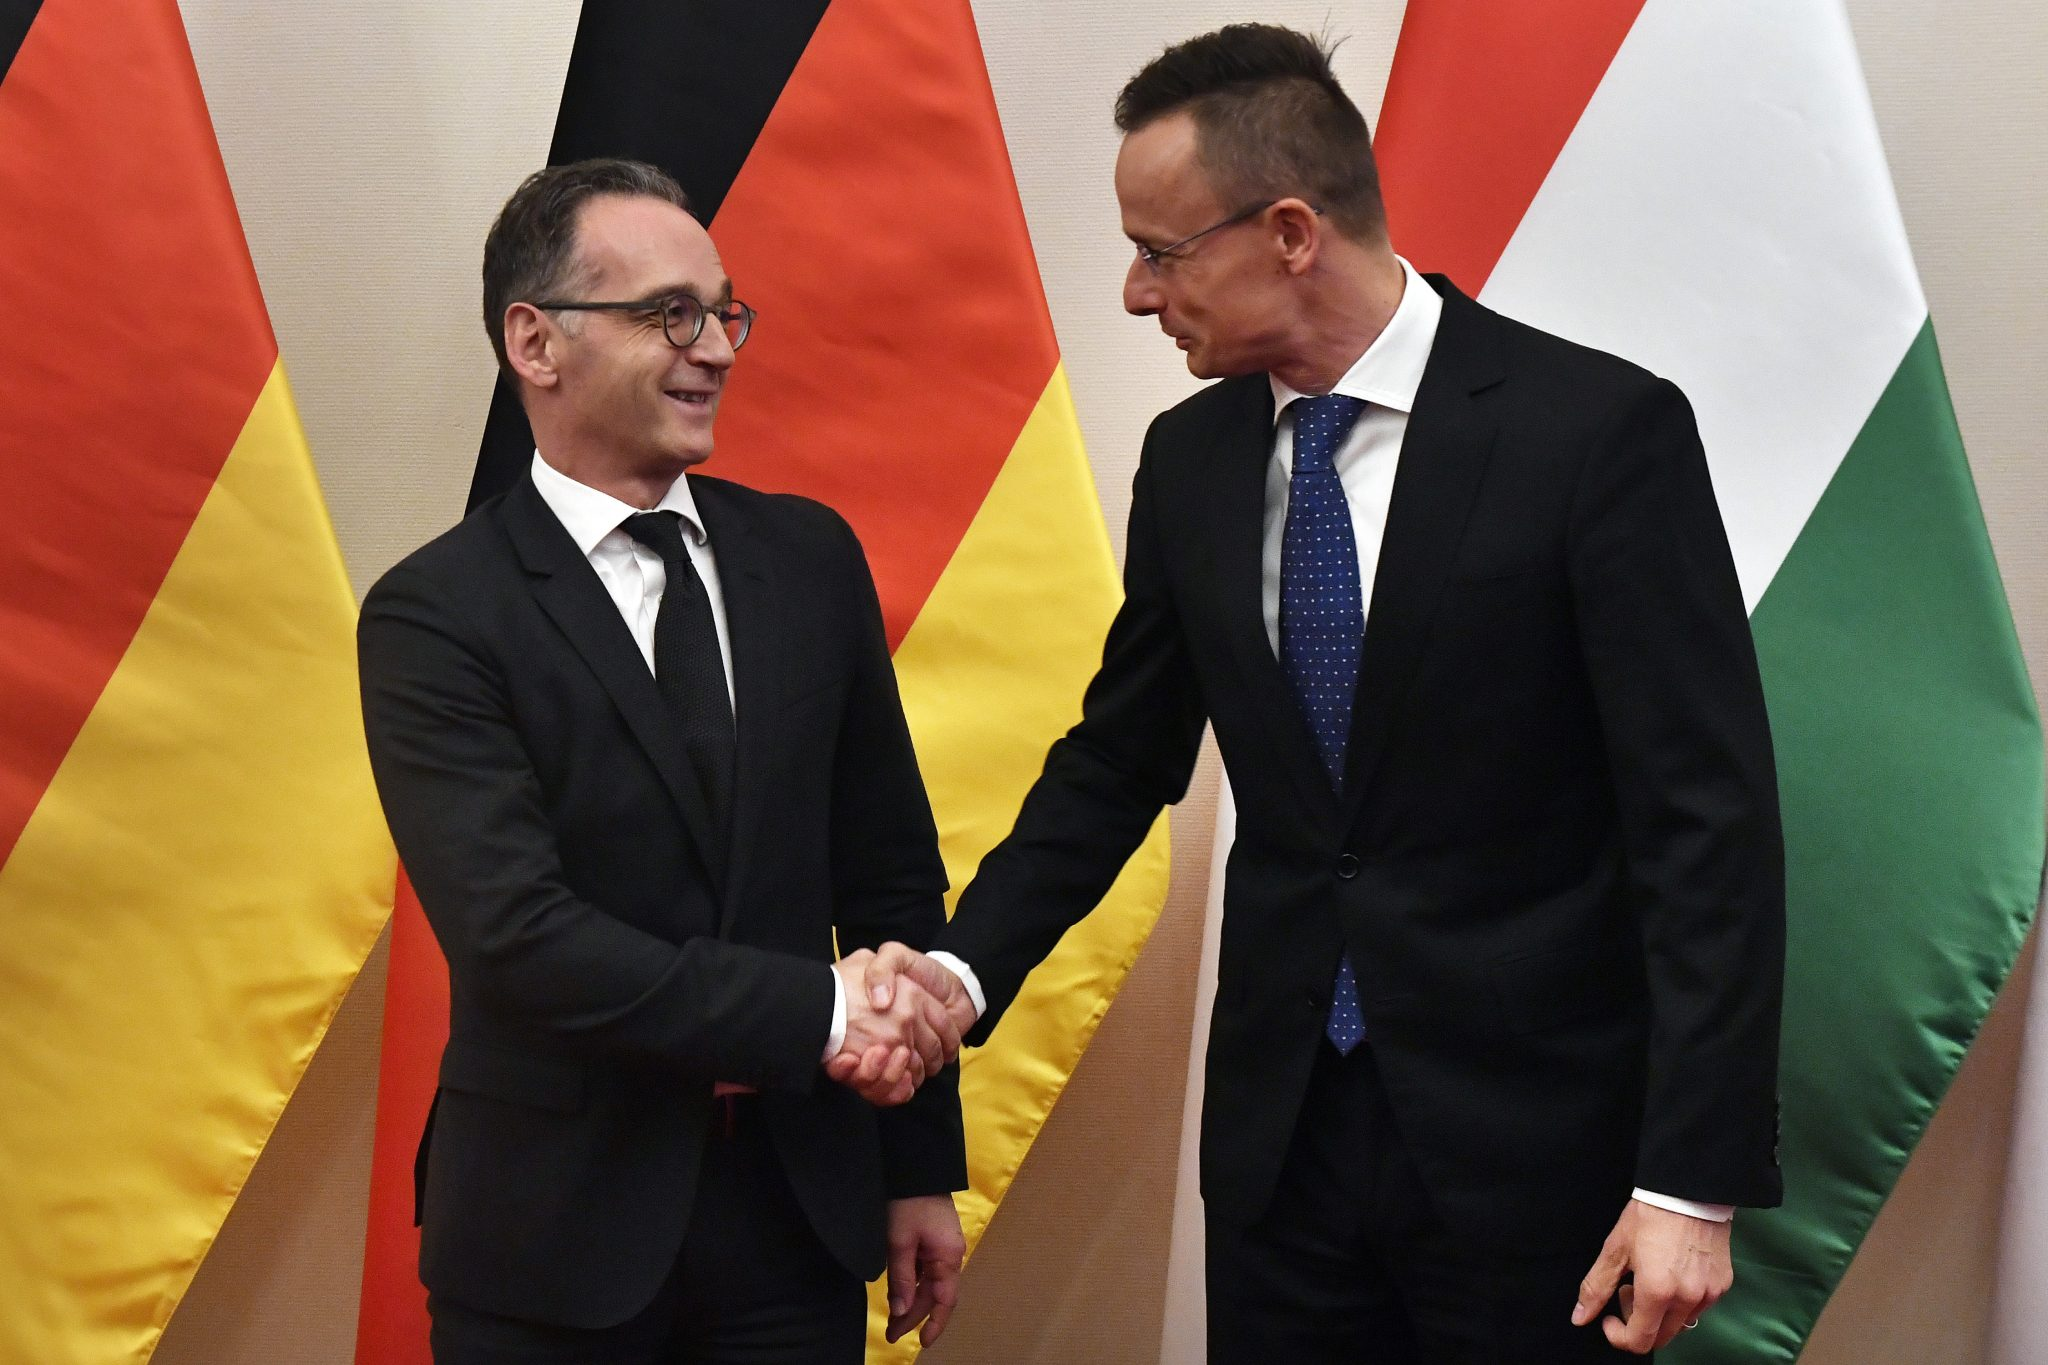 Szijjártó-Maas Meeting: Hungary-Germany Economic Allies with Disagreements in Key Issues post's picture